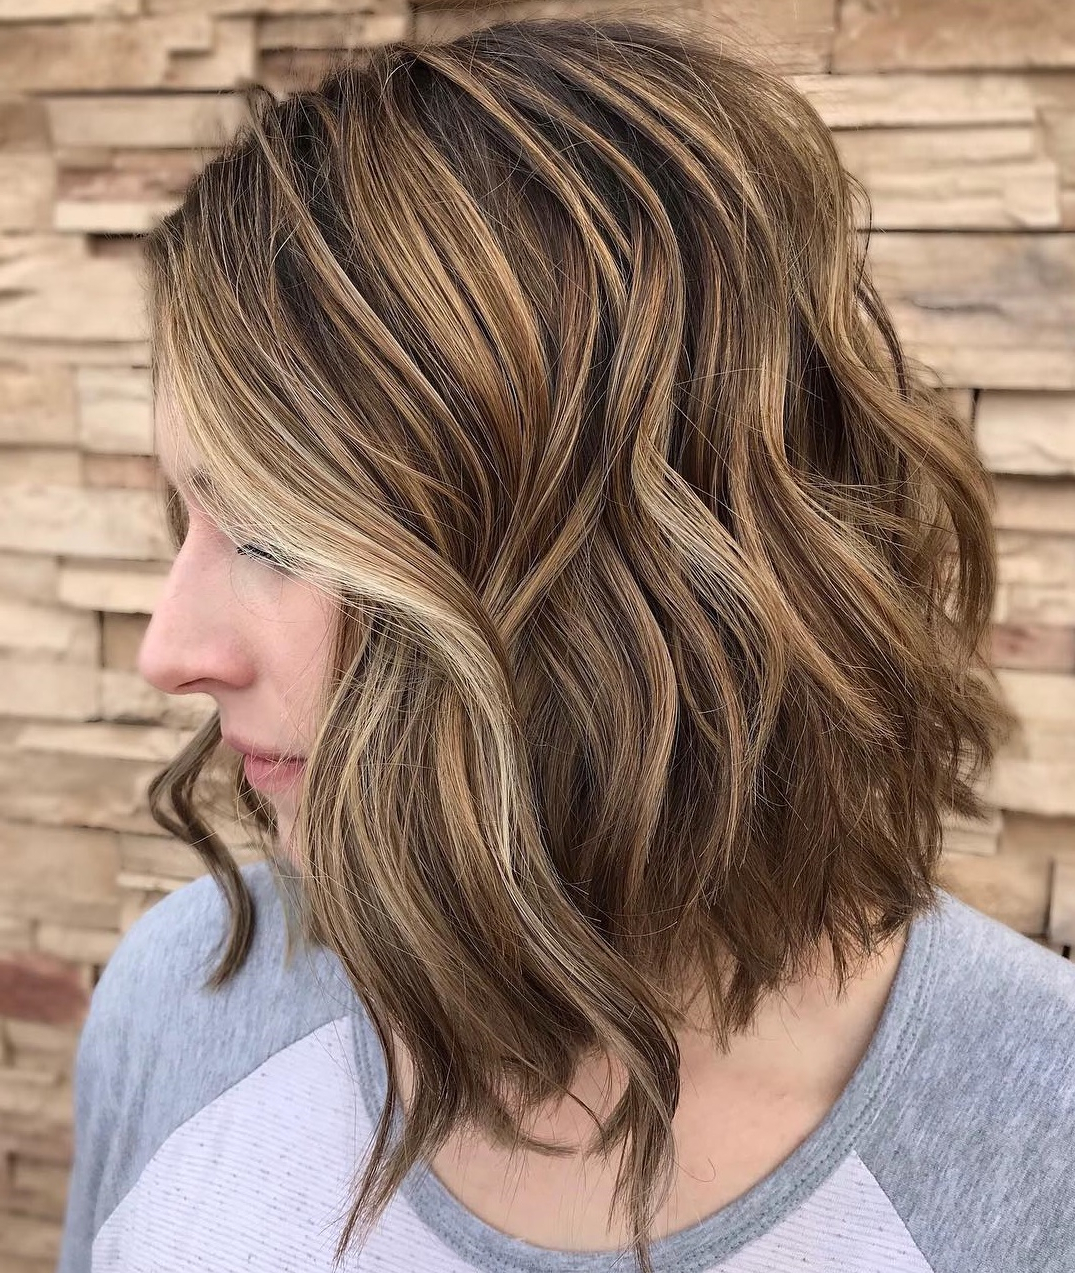 How To Pull Off Medium Length Haircuts And Hairstyles In 2019 Pertaining To Bob Hairstyles With Contrasting Highlights (View 15 of 20)